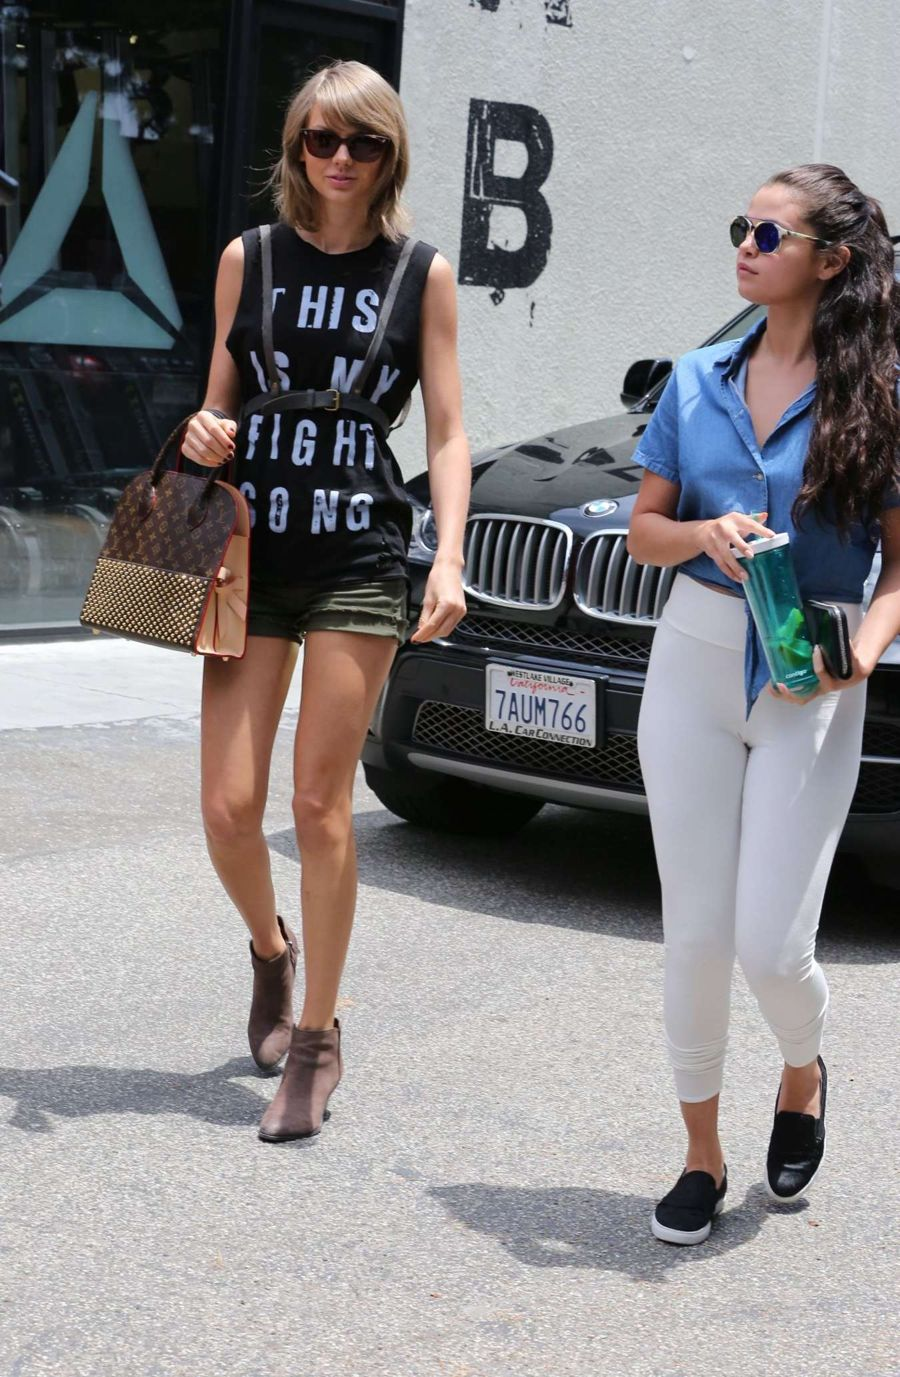 Selena Gomez Has Lunch With BFF Taylor Swift